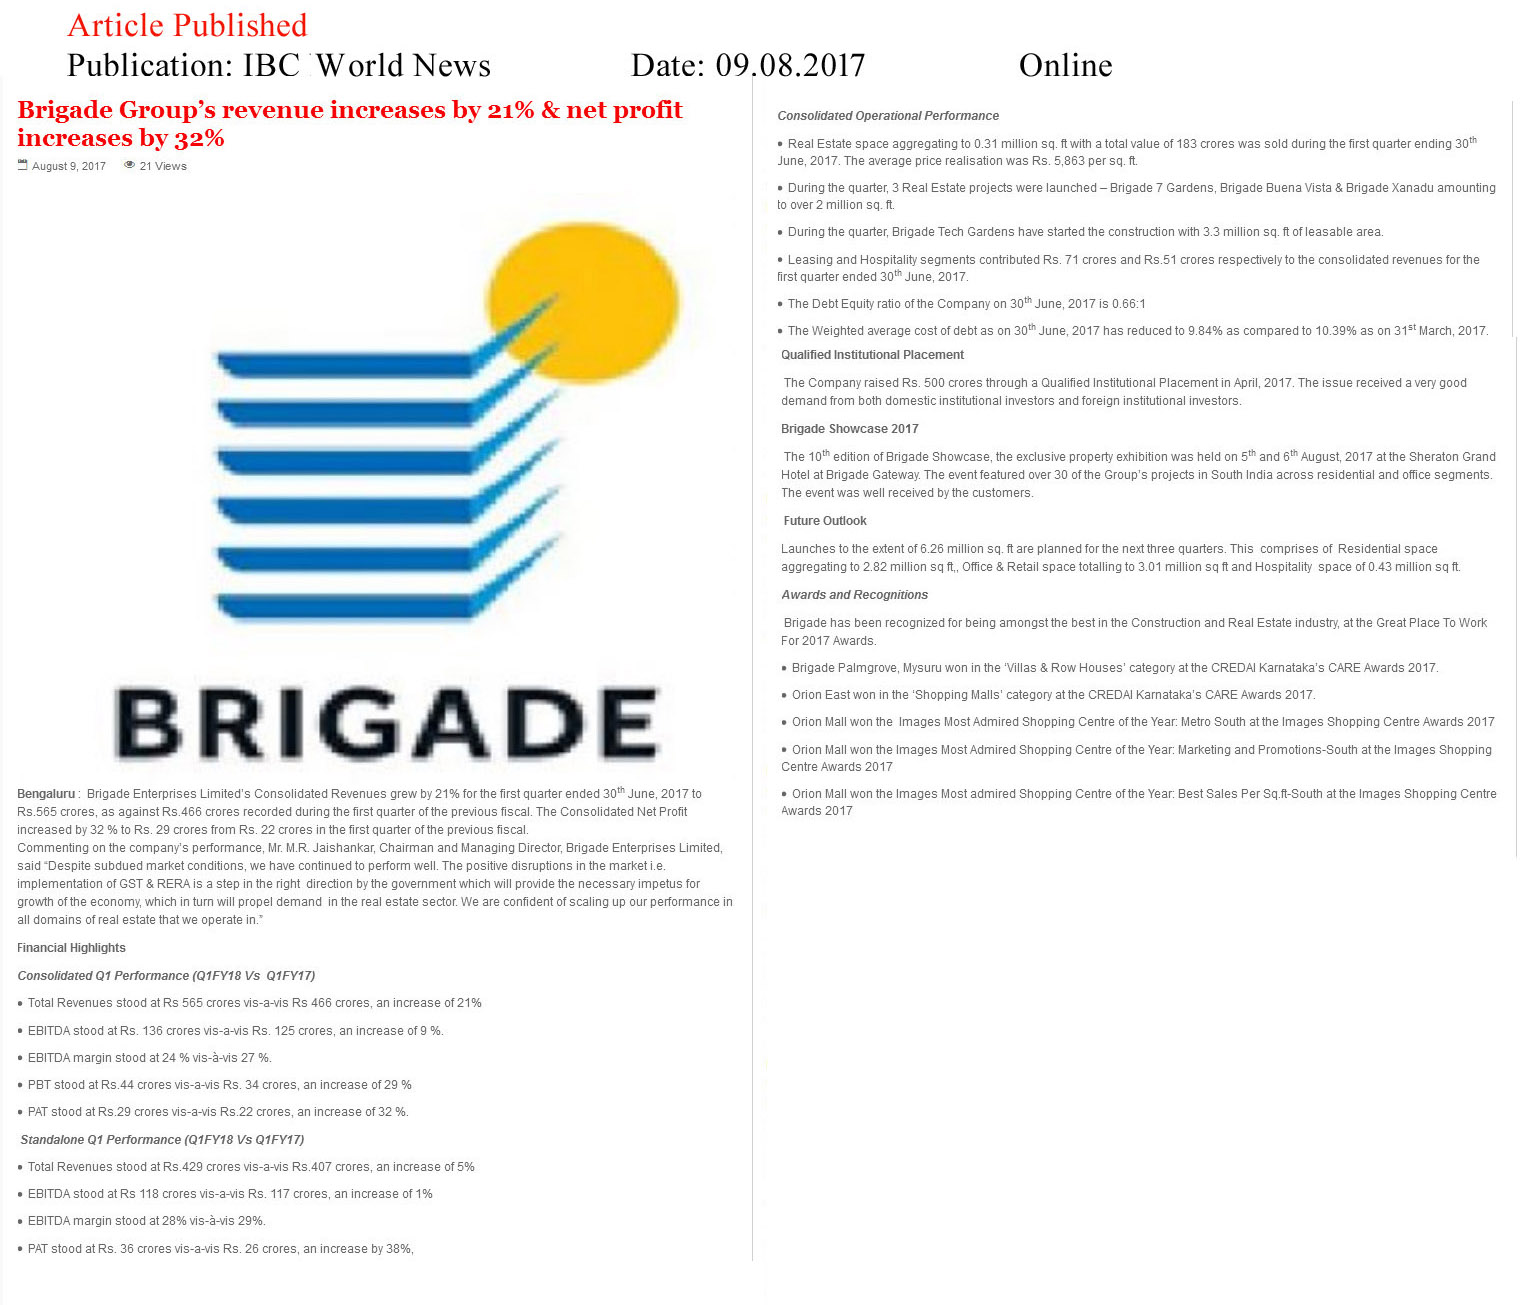 Brigade Group's revenue increases by 21% & net profit increases by 32%—IBC World News-Online